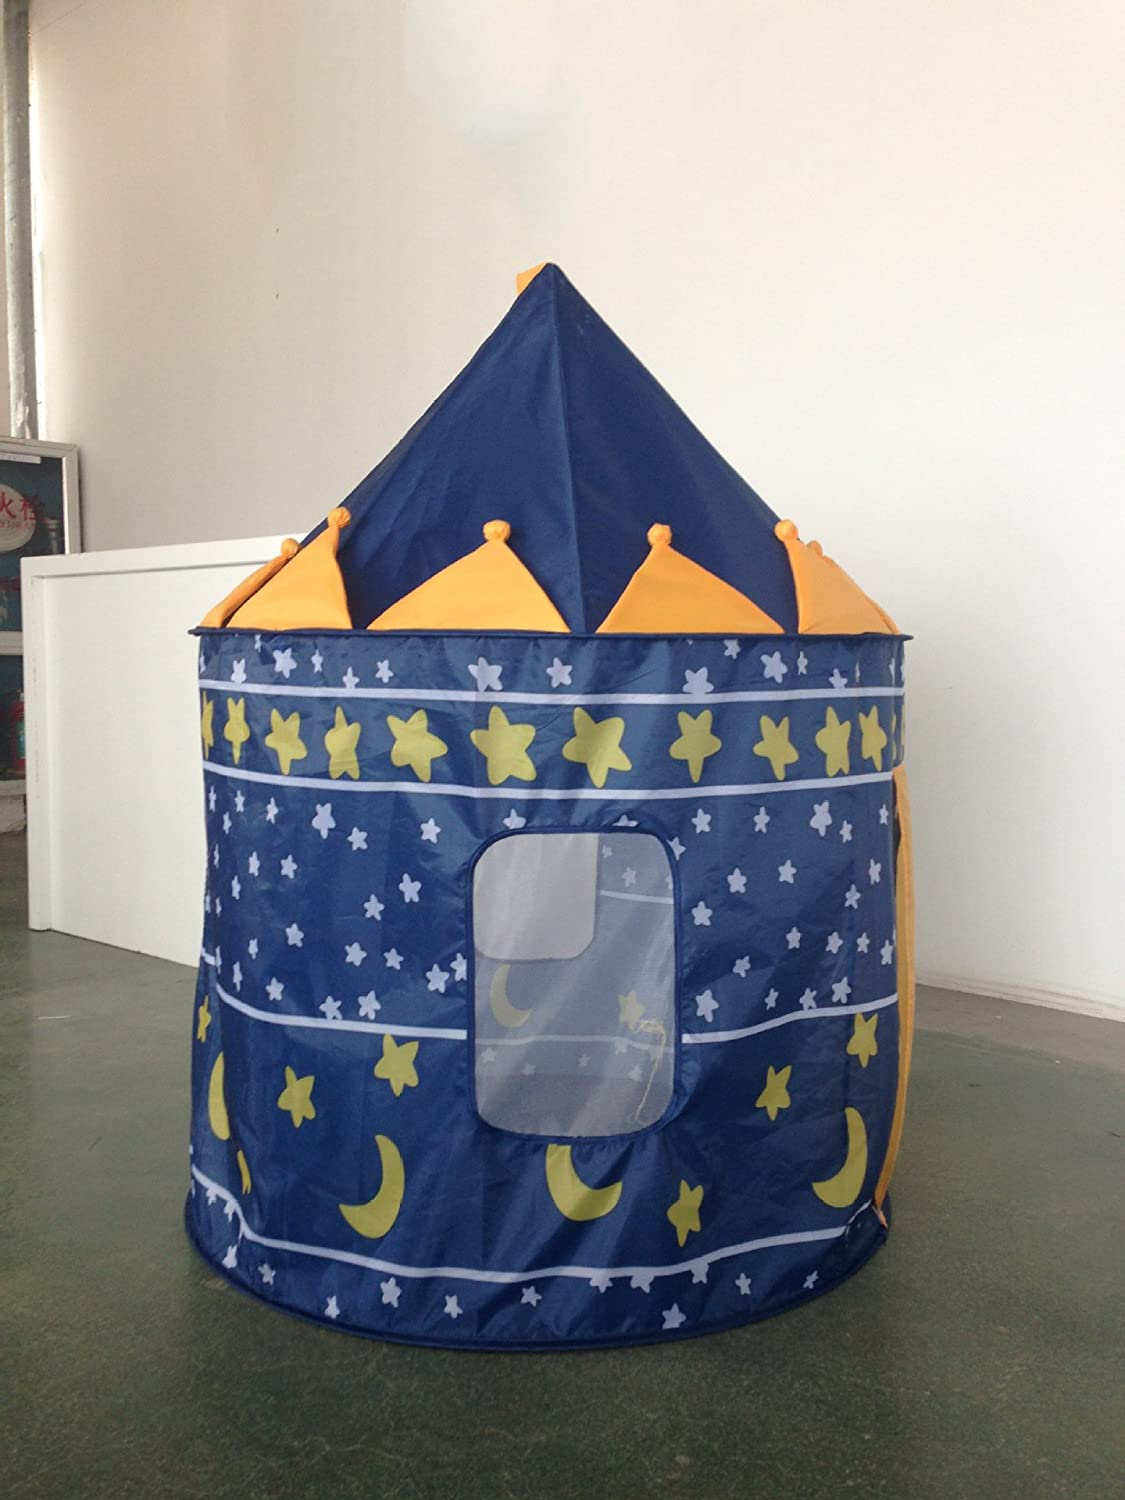 Barg-N-Binz Prince Kids POP Louisville-Jefferson County Mall UP Tent OFFicial mail order